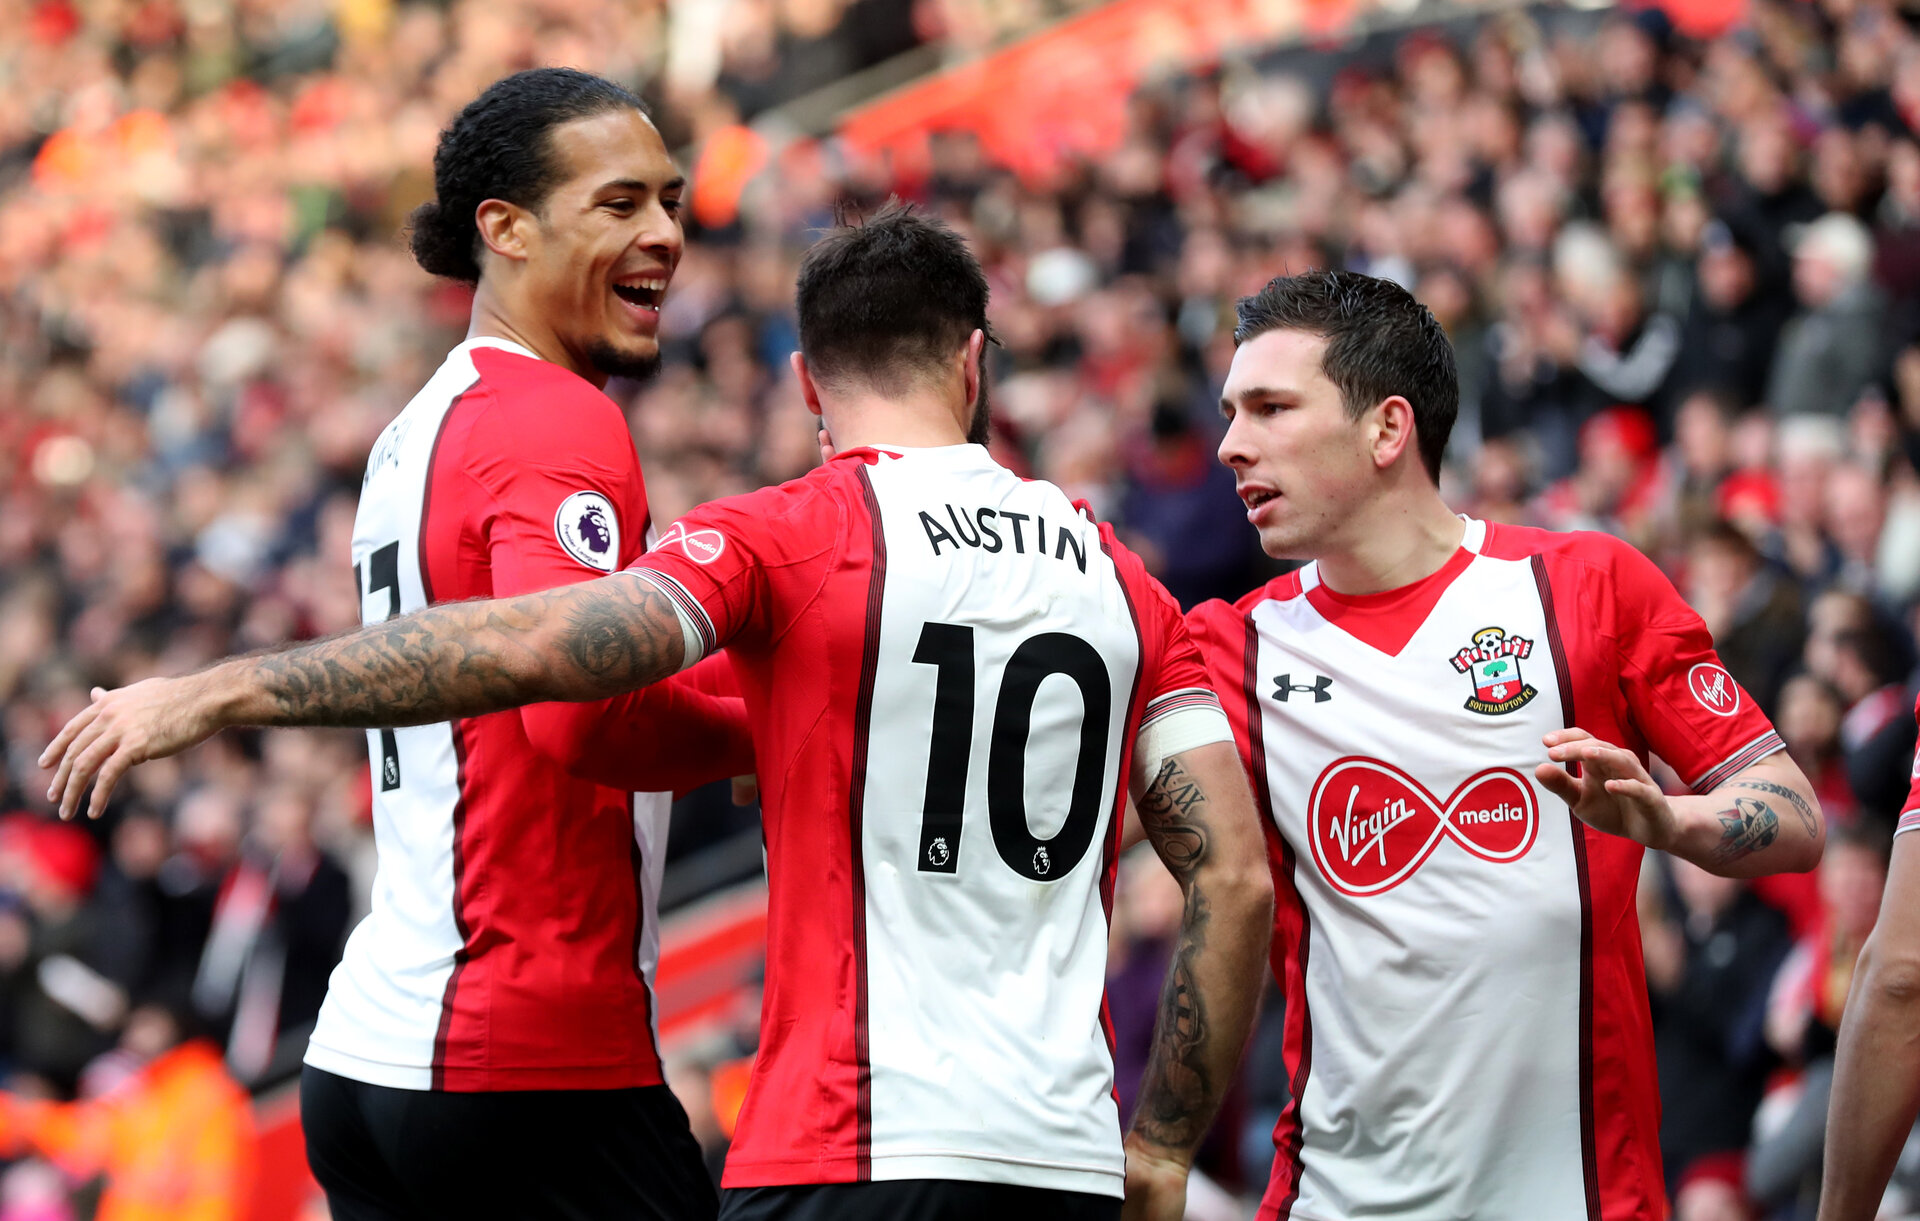 SOUTHAMPTON, ENGLAND - NOVEMBER 26: L to R, Virgil Van Dijk, Charlie Austin and Pierre-Emile Hojbjerg, during the Premier League match between Southampton and Everton at St Mary's Stadium on November 26, 2017 in Southampton, England. (Photo by Matt Watson/Southampton FC via Getty Images)